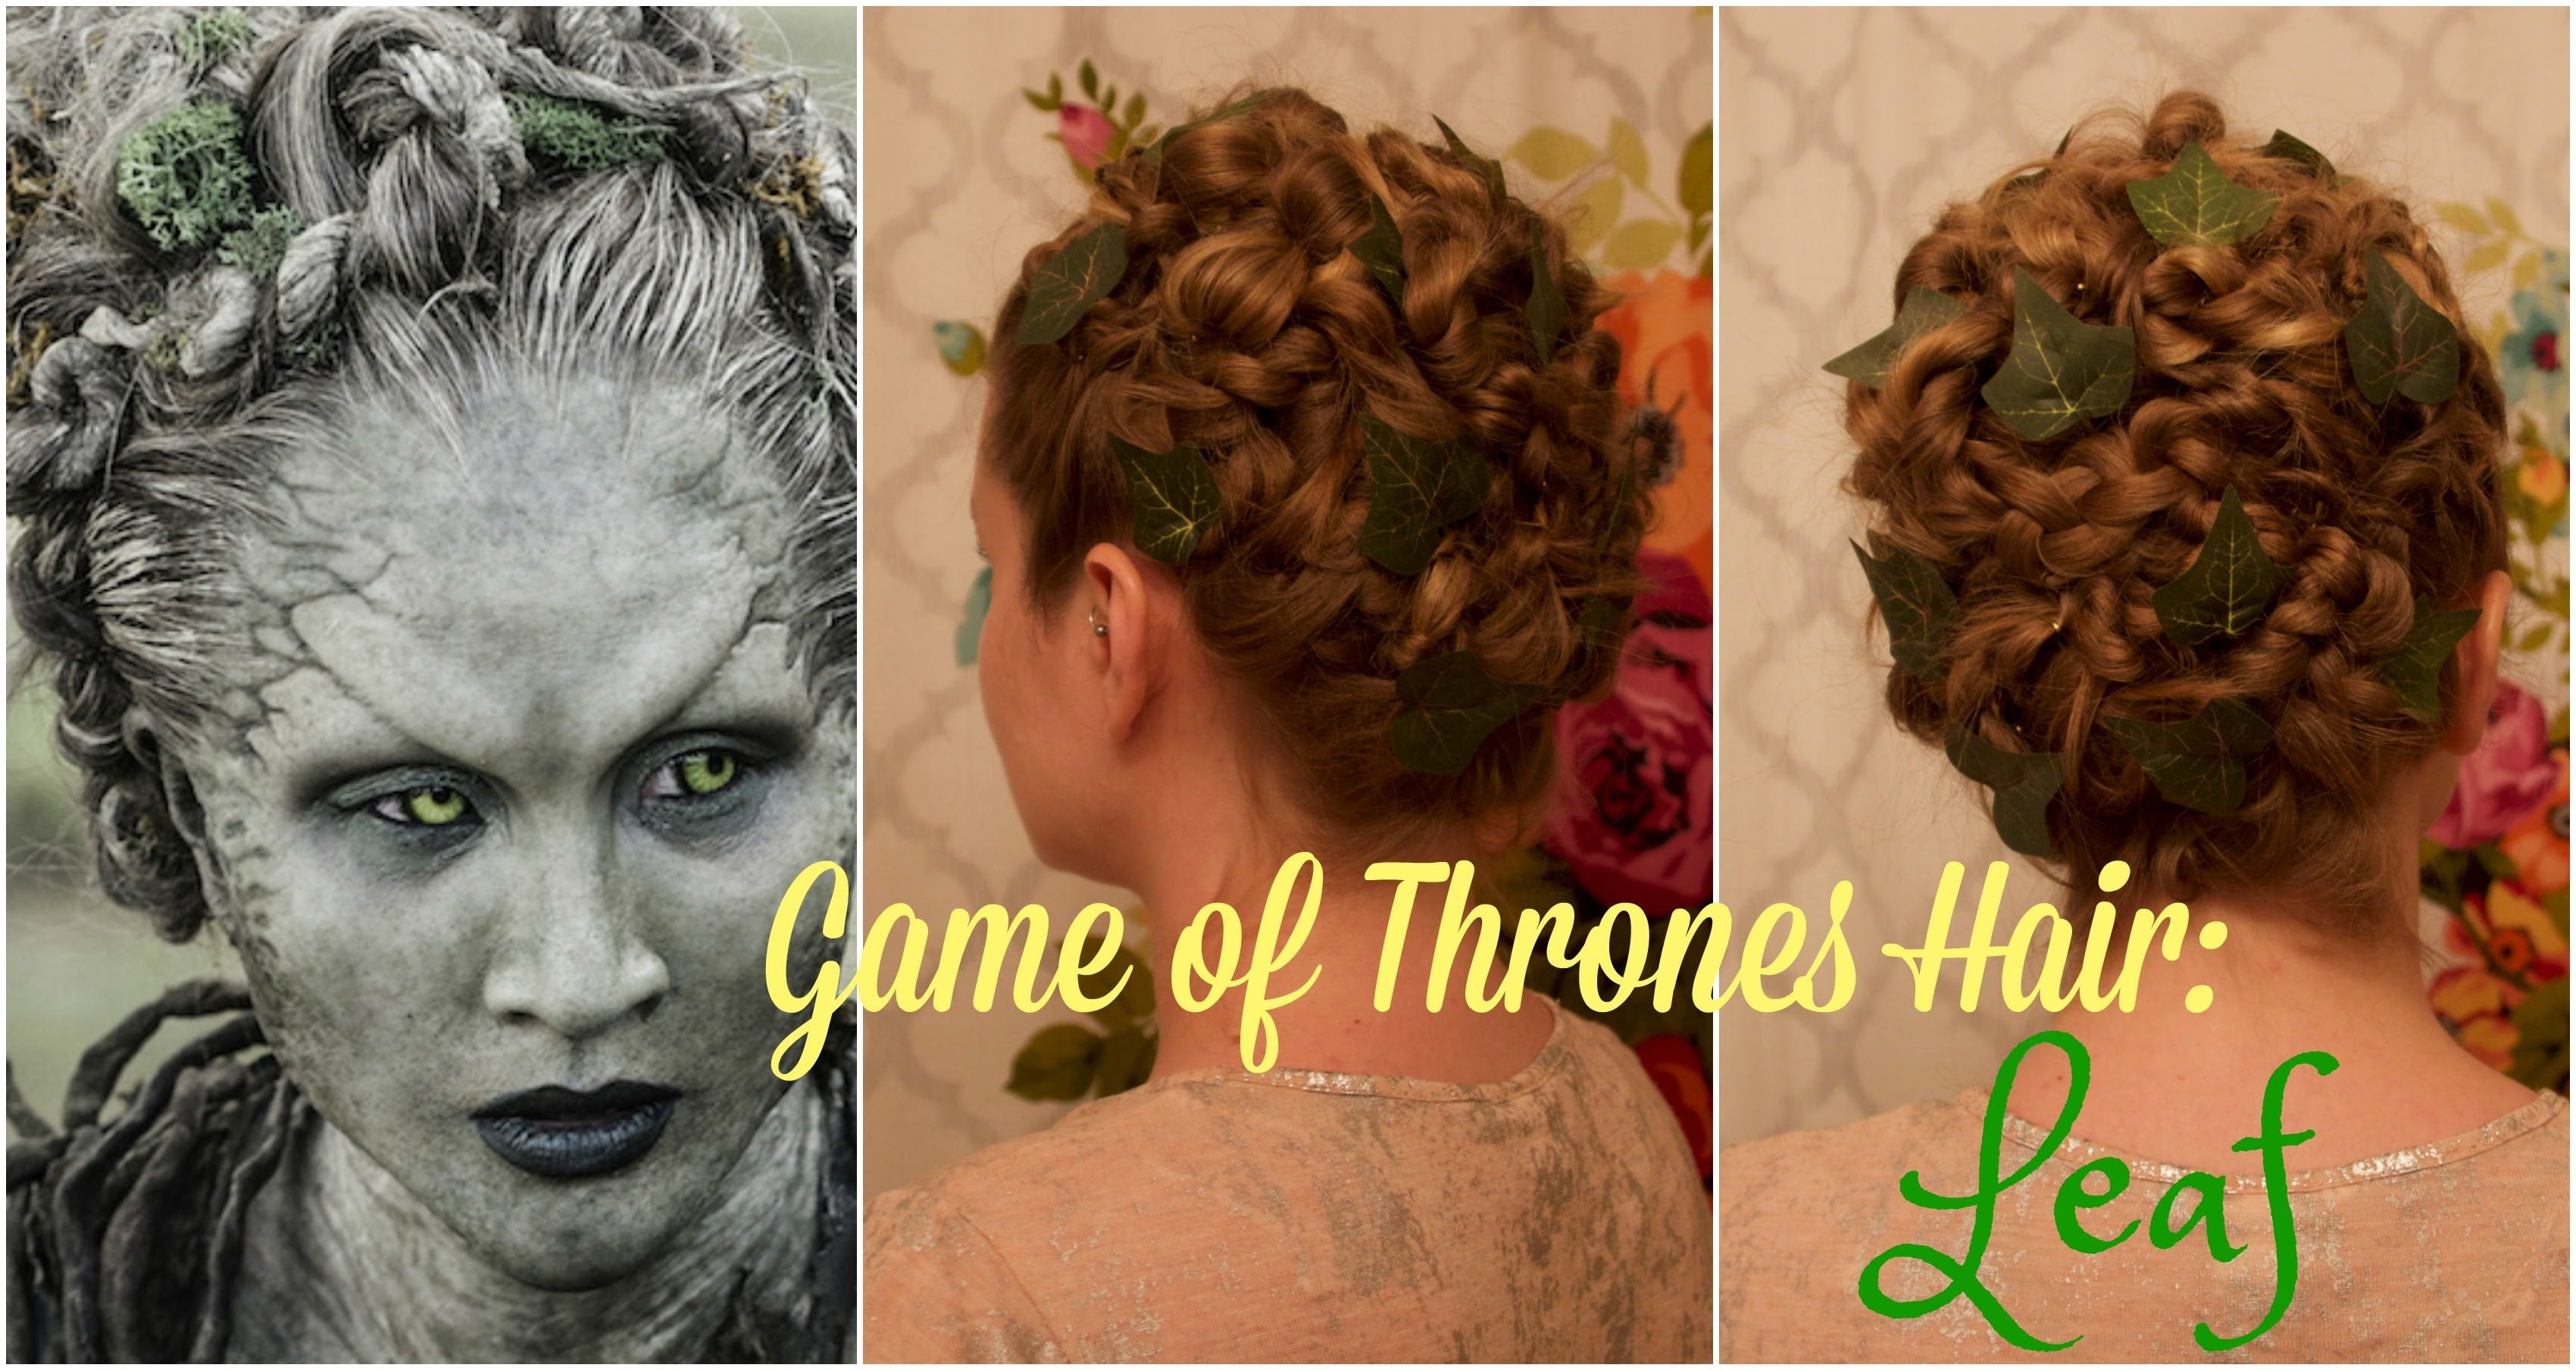 Game of Thrones Hairstyling: Leaf